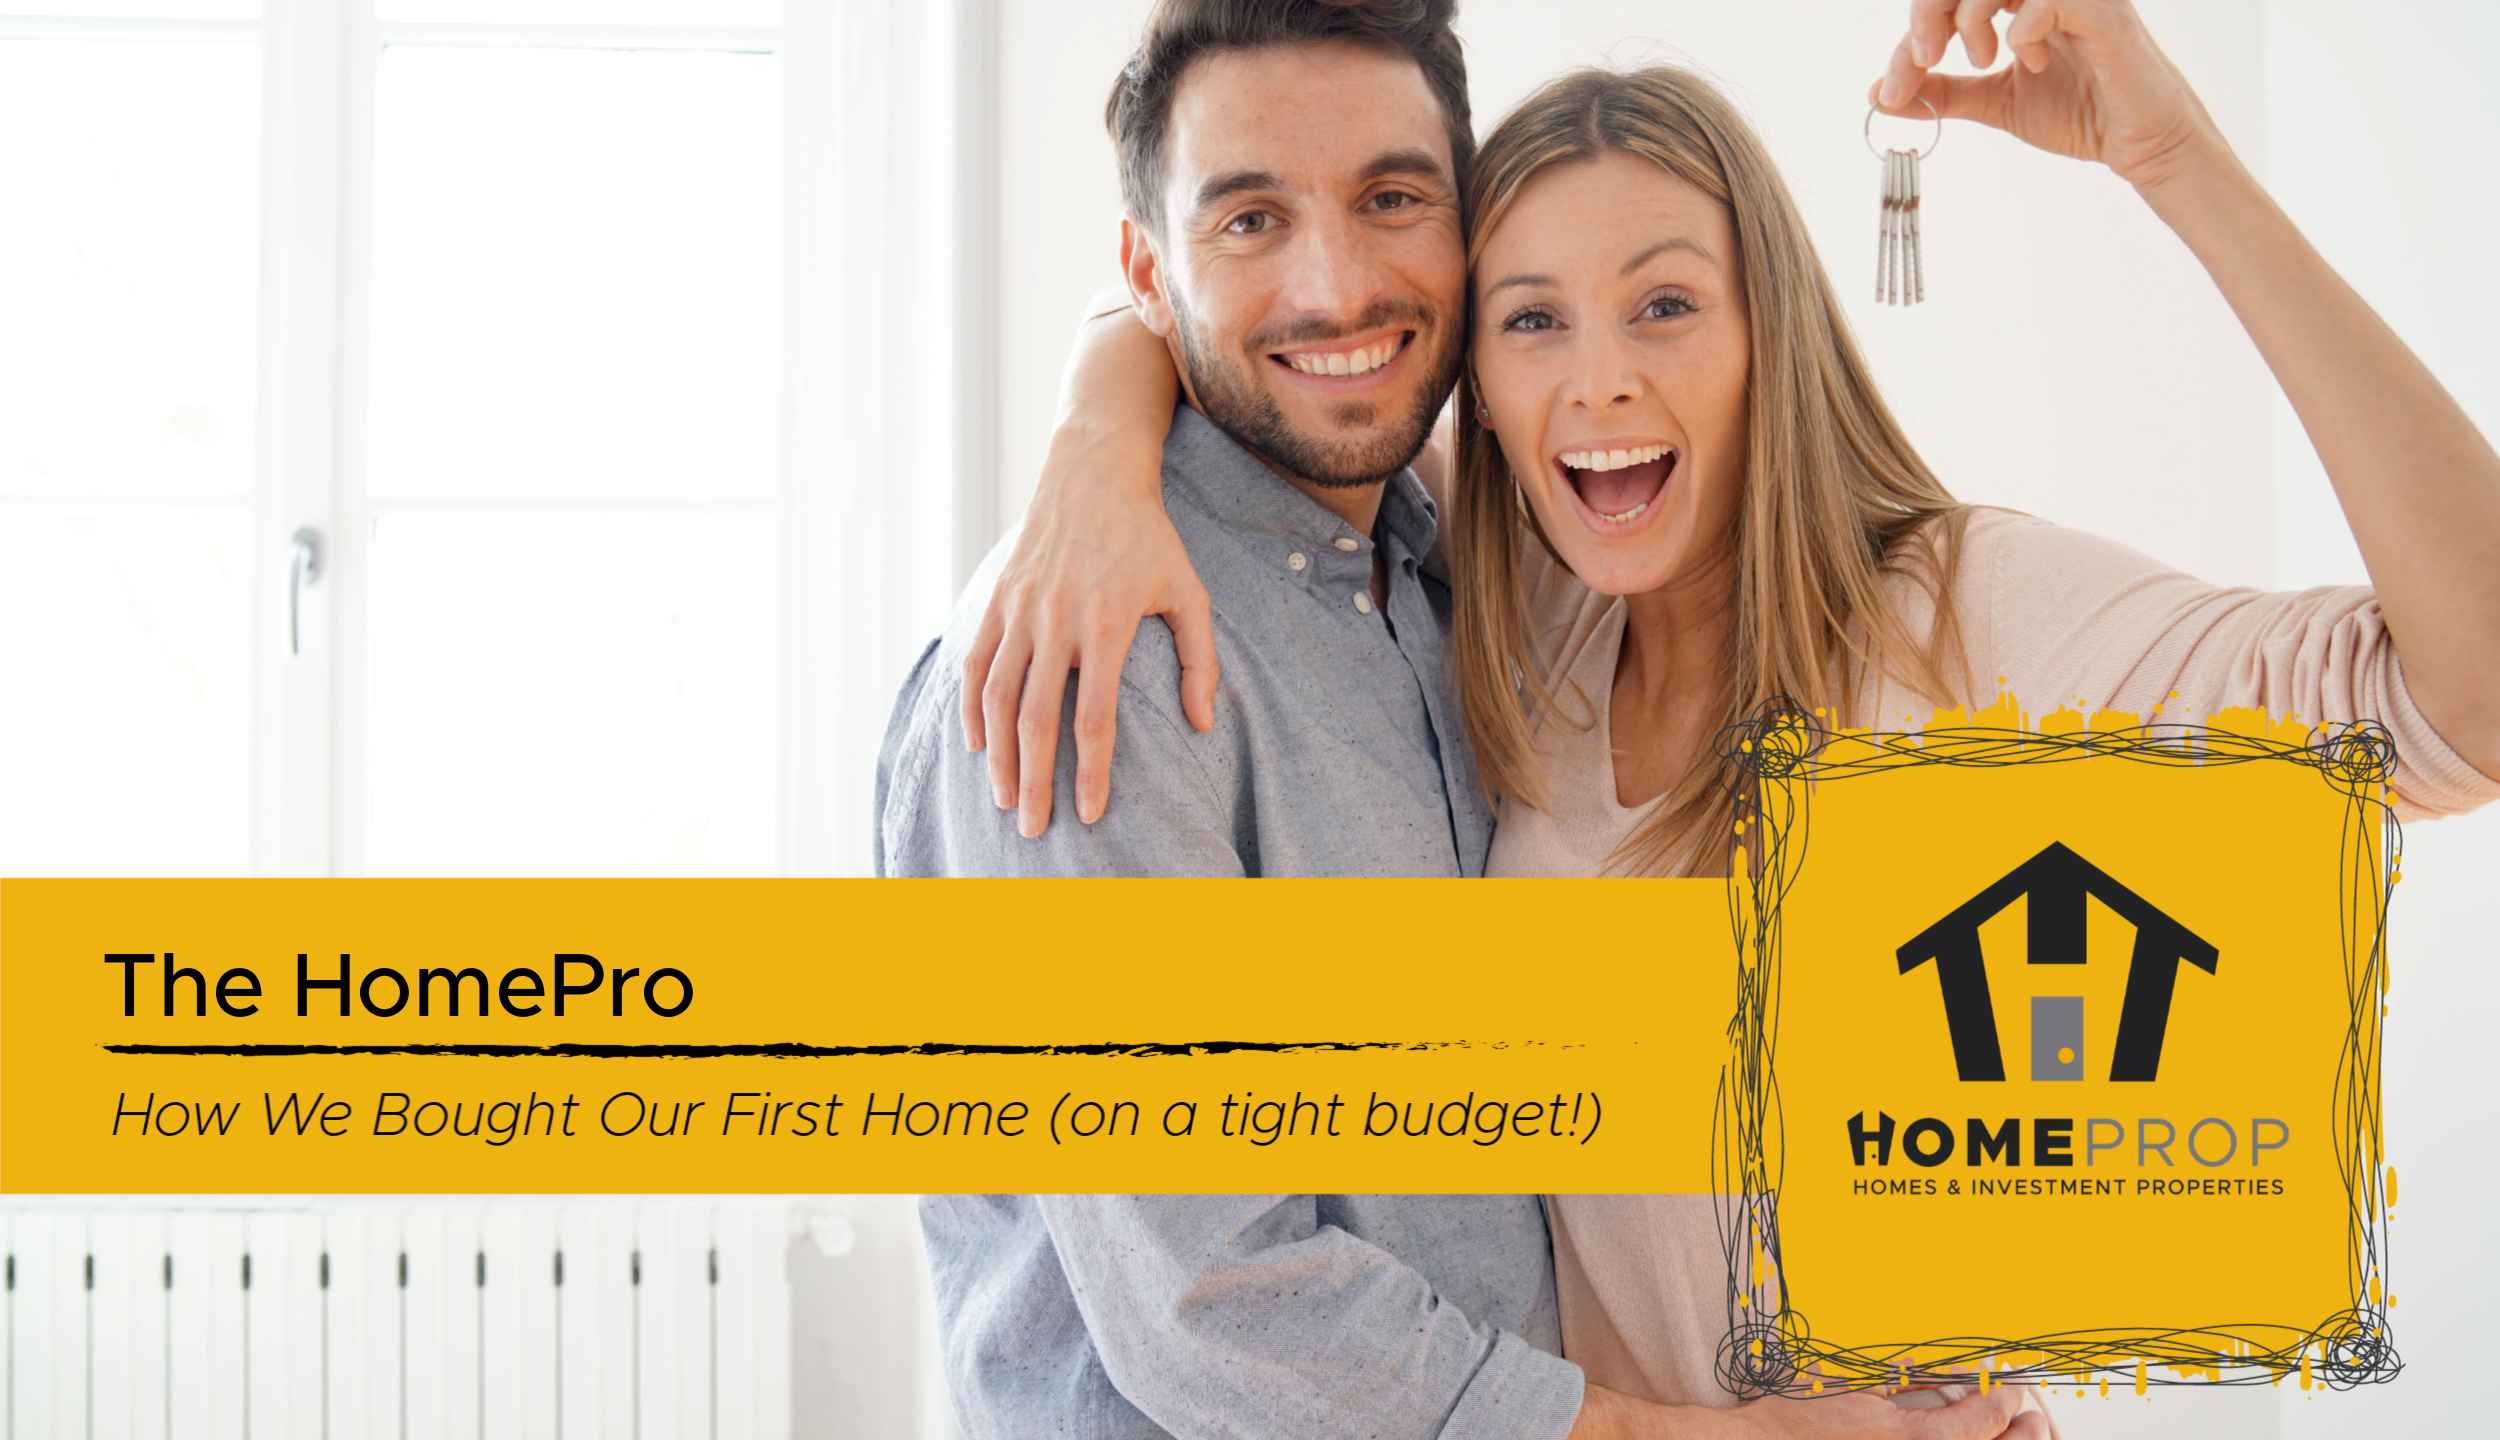 Buying a home on a tight budget